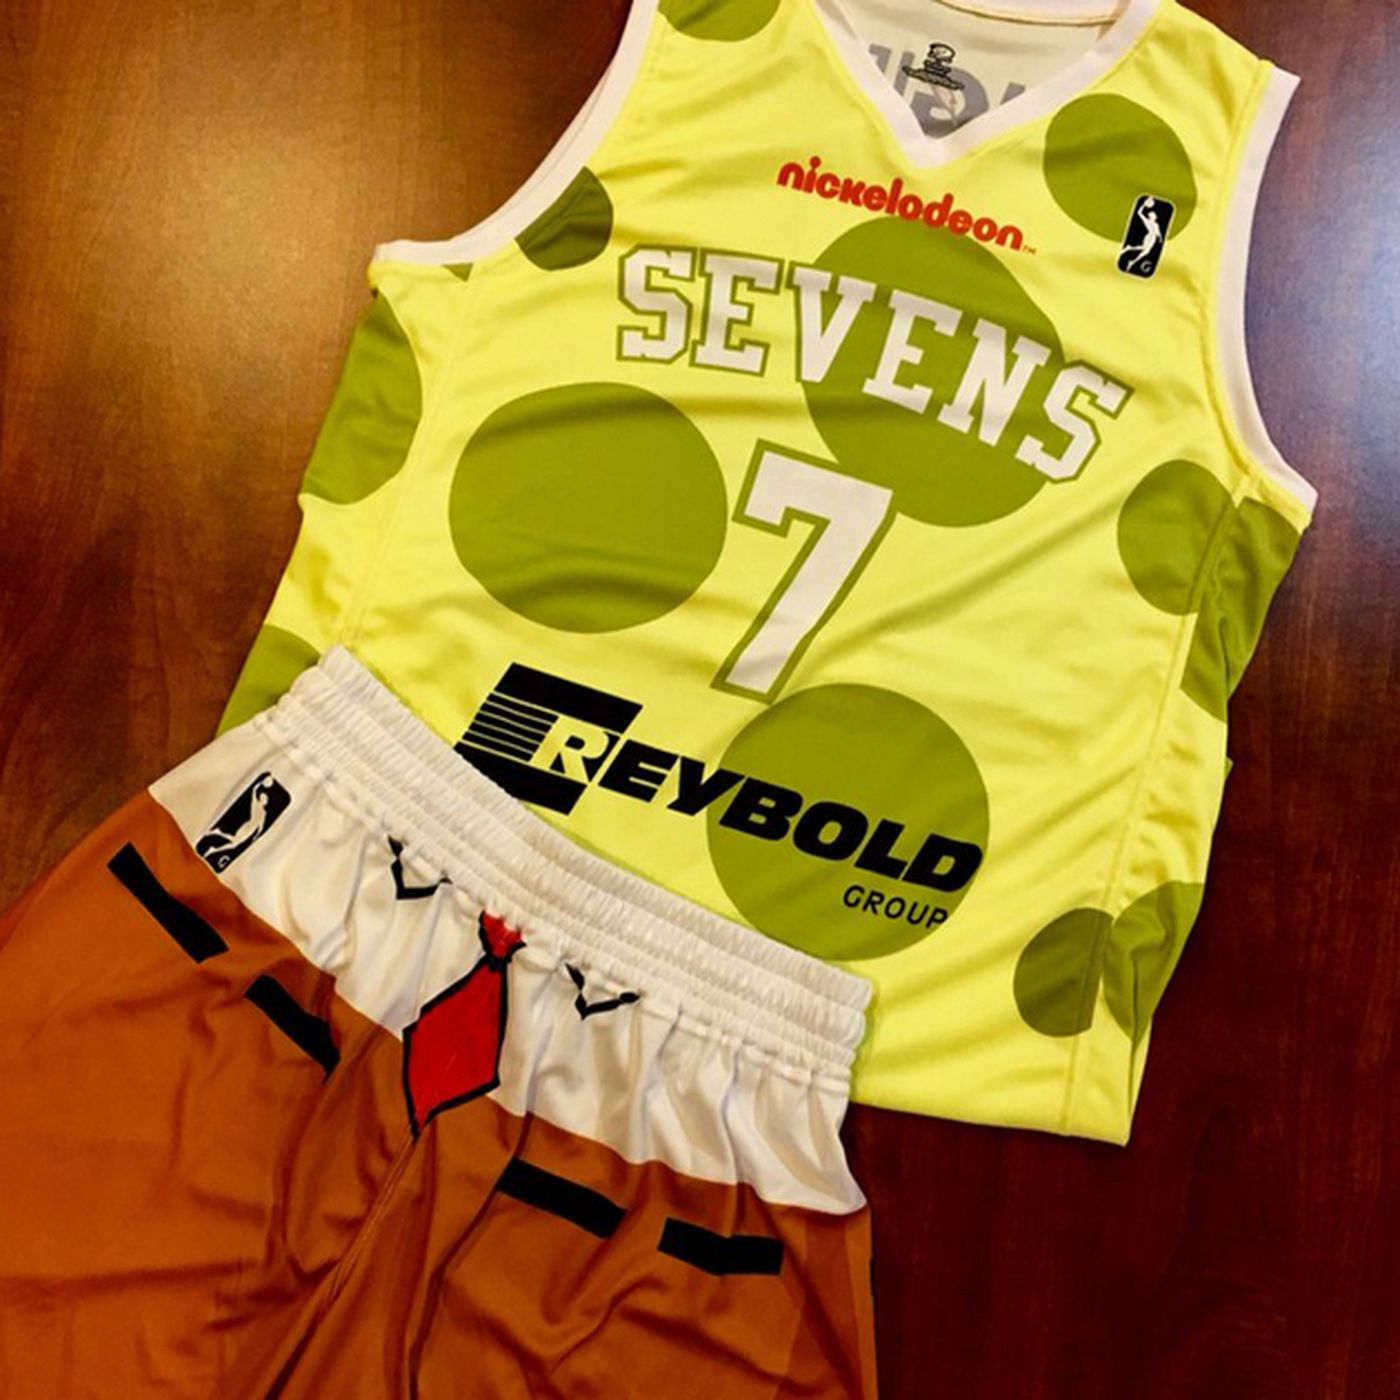 c089a42f224 The Sixers  G-League team is wearing Spongebob uniforms for Nickelodeon  night - SBNation.com